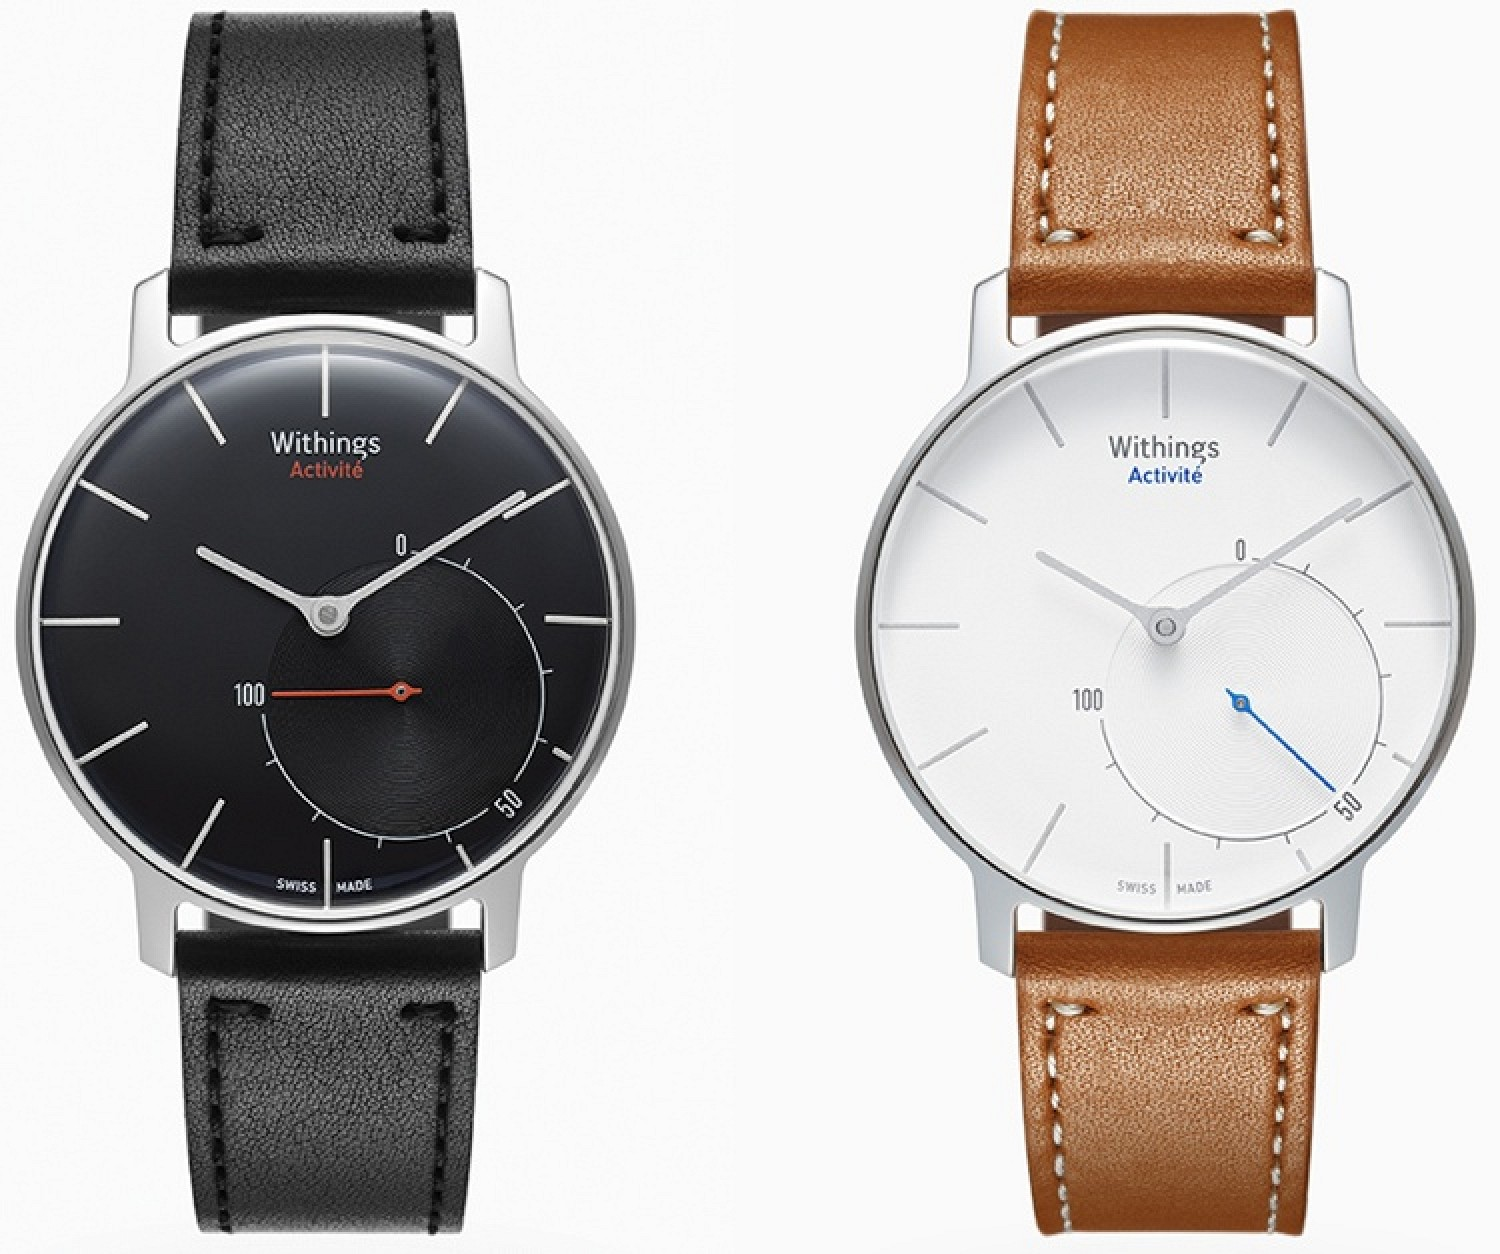 Withings Debuts 'Activité' Fitness Tracker With